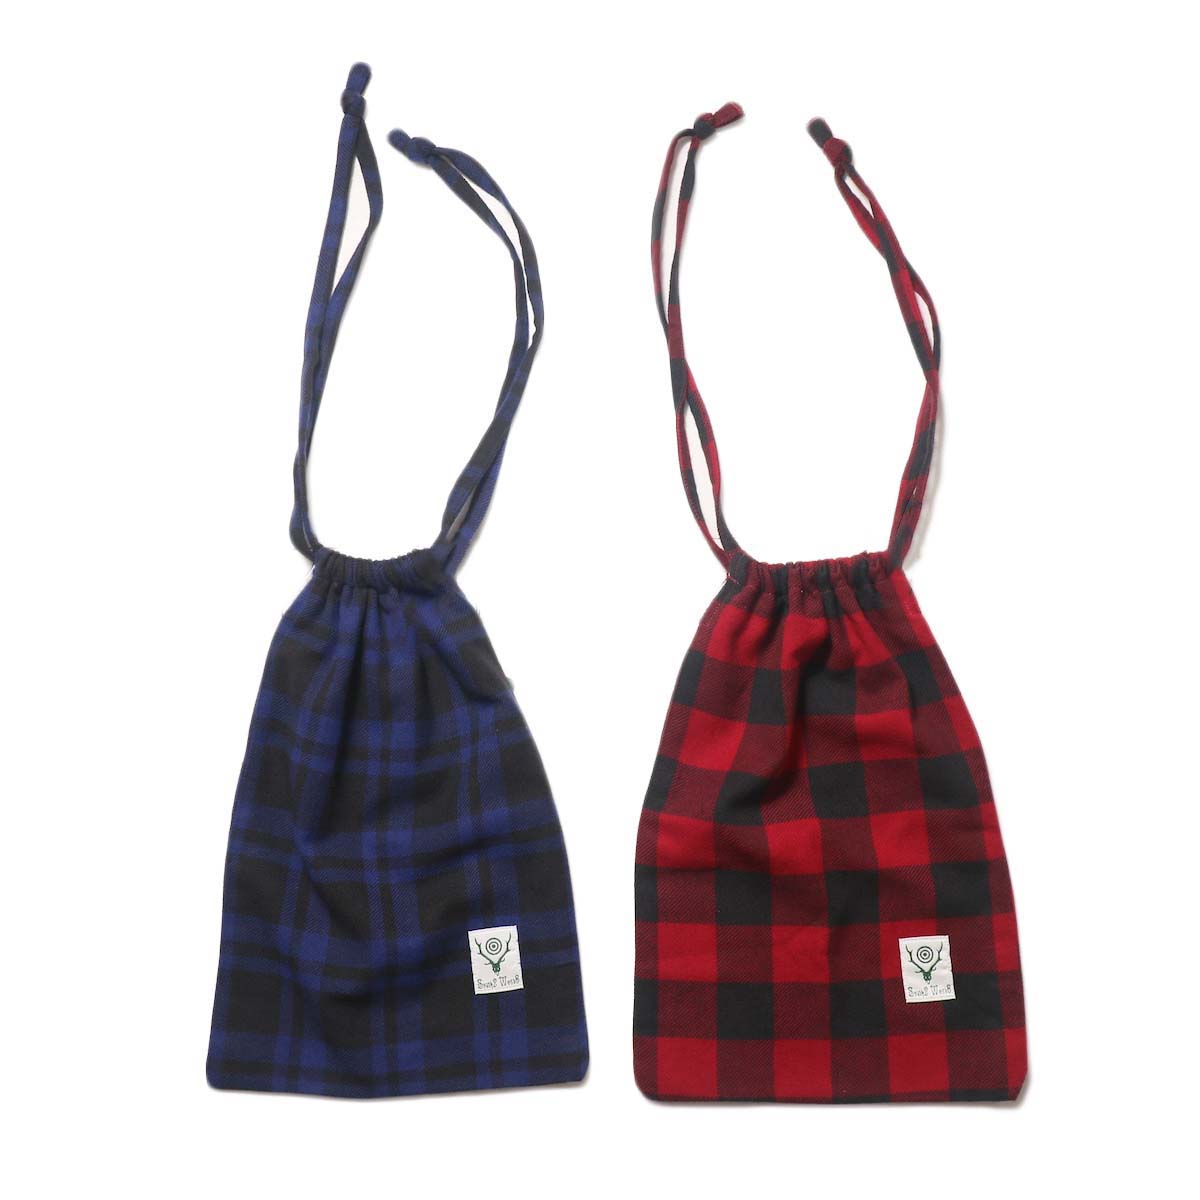 South2 West8 / String Bag - Plaid Twill